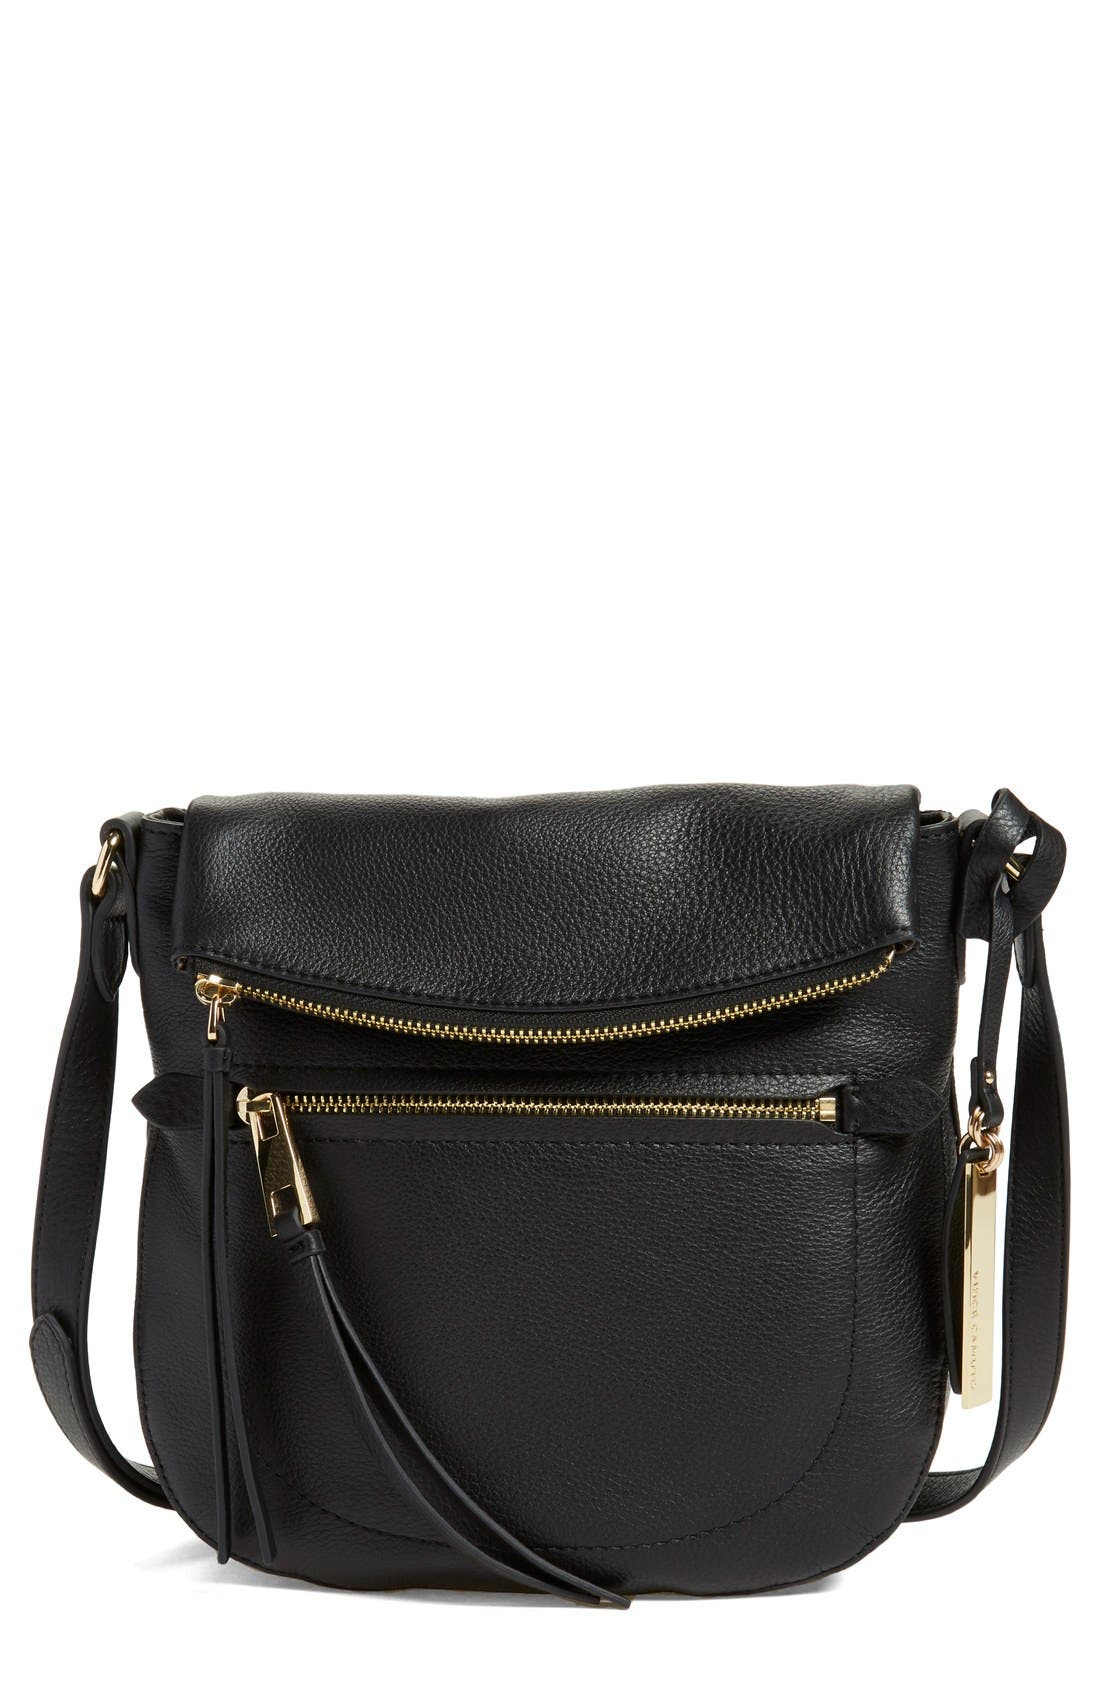 'Tala' Leather Crossbody Bag,                             Main thumbnail 3, color,